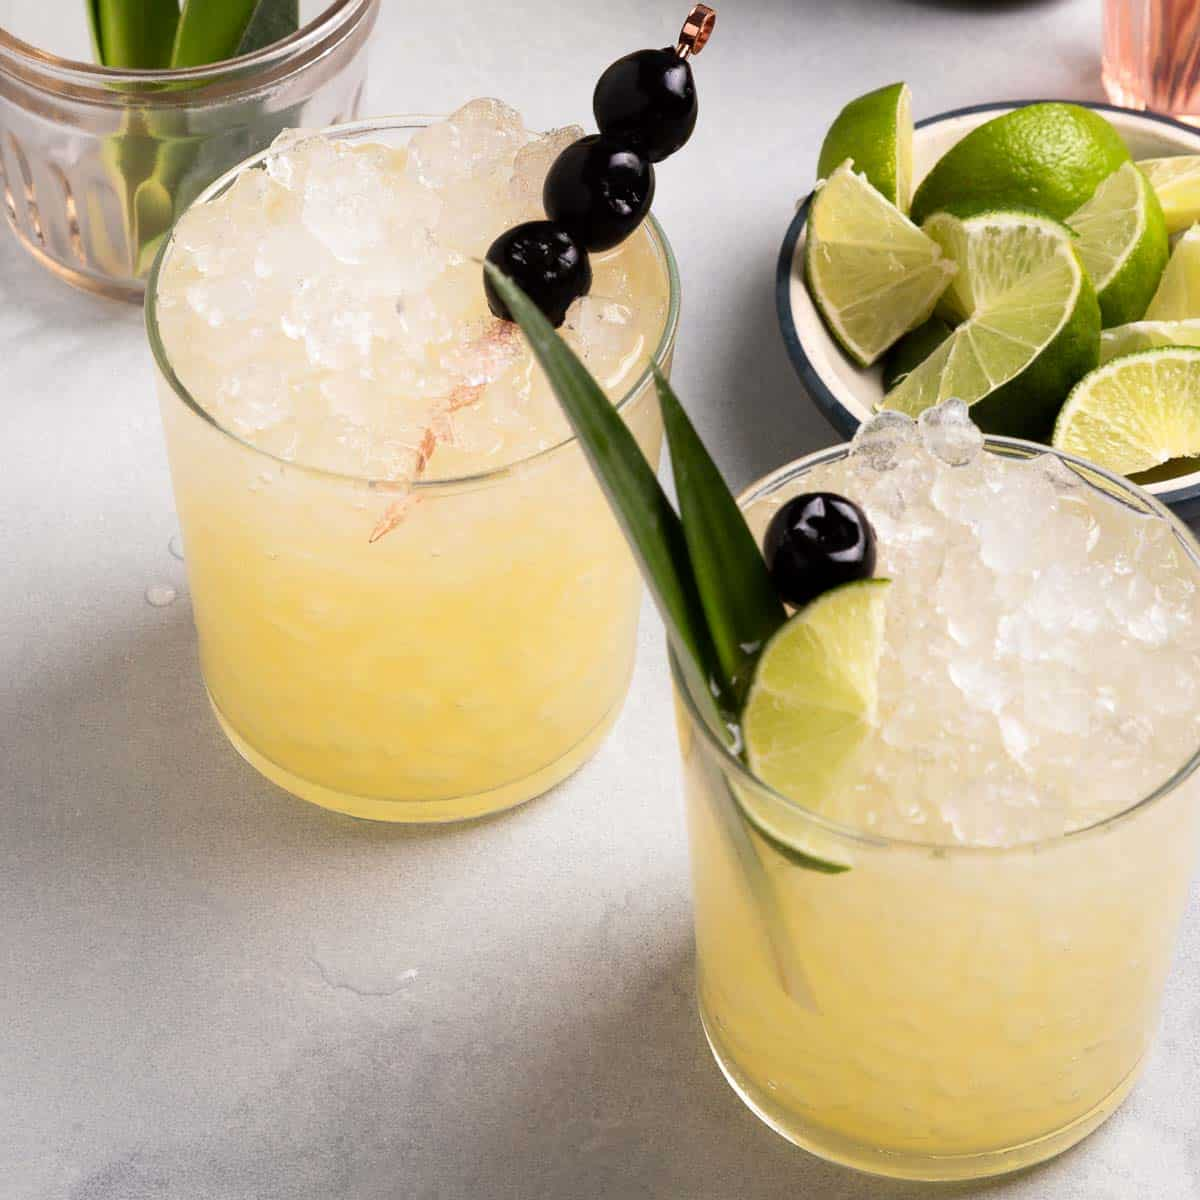 Two glasses of a yellow drink with lots of ice next to a small bowl of limes